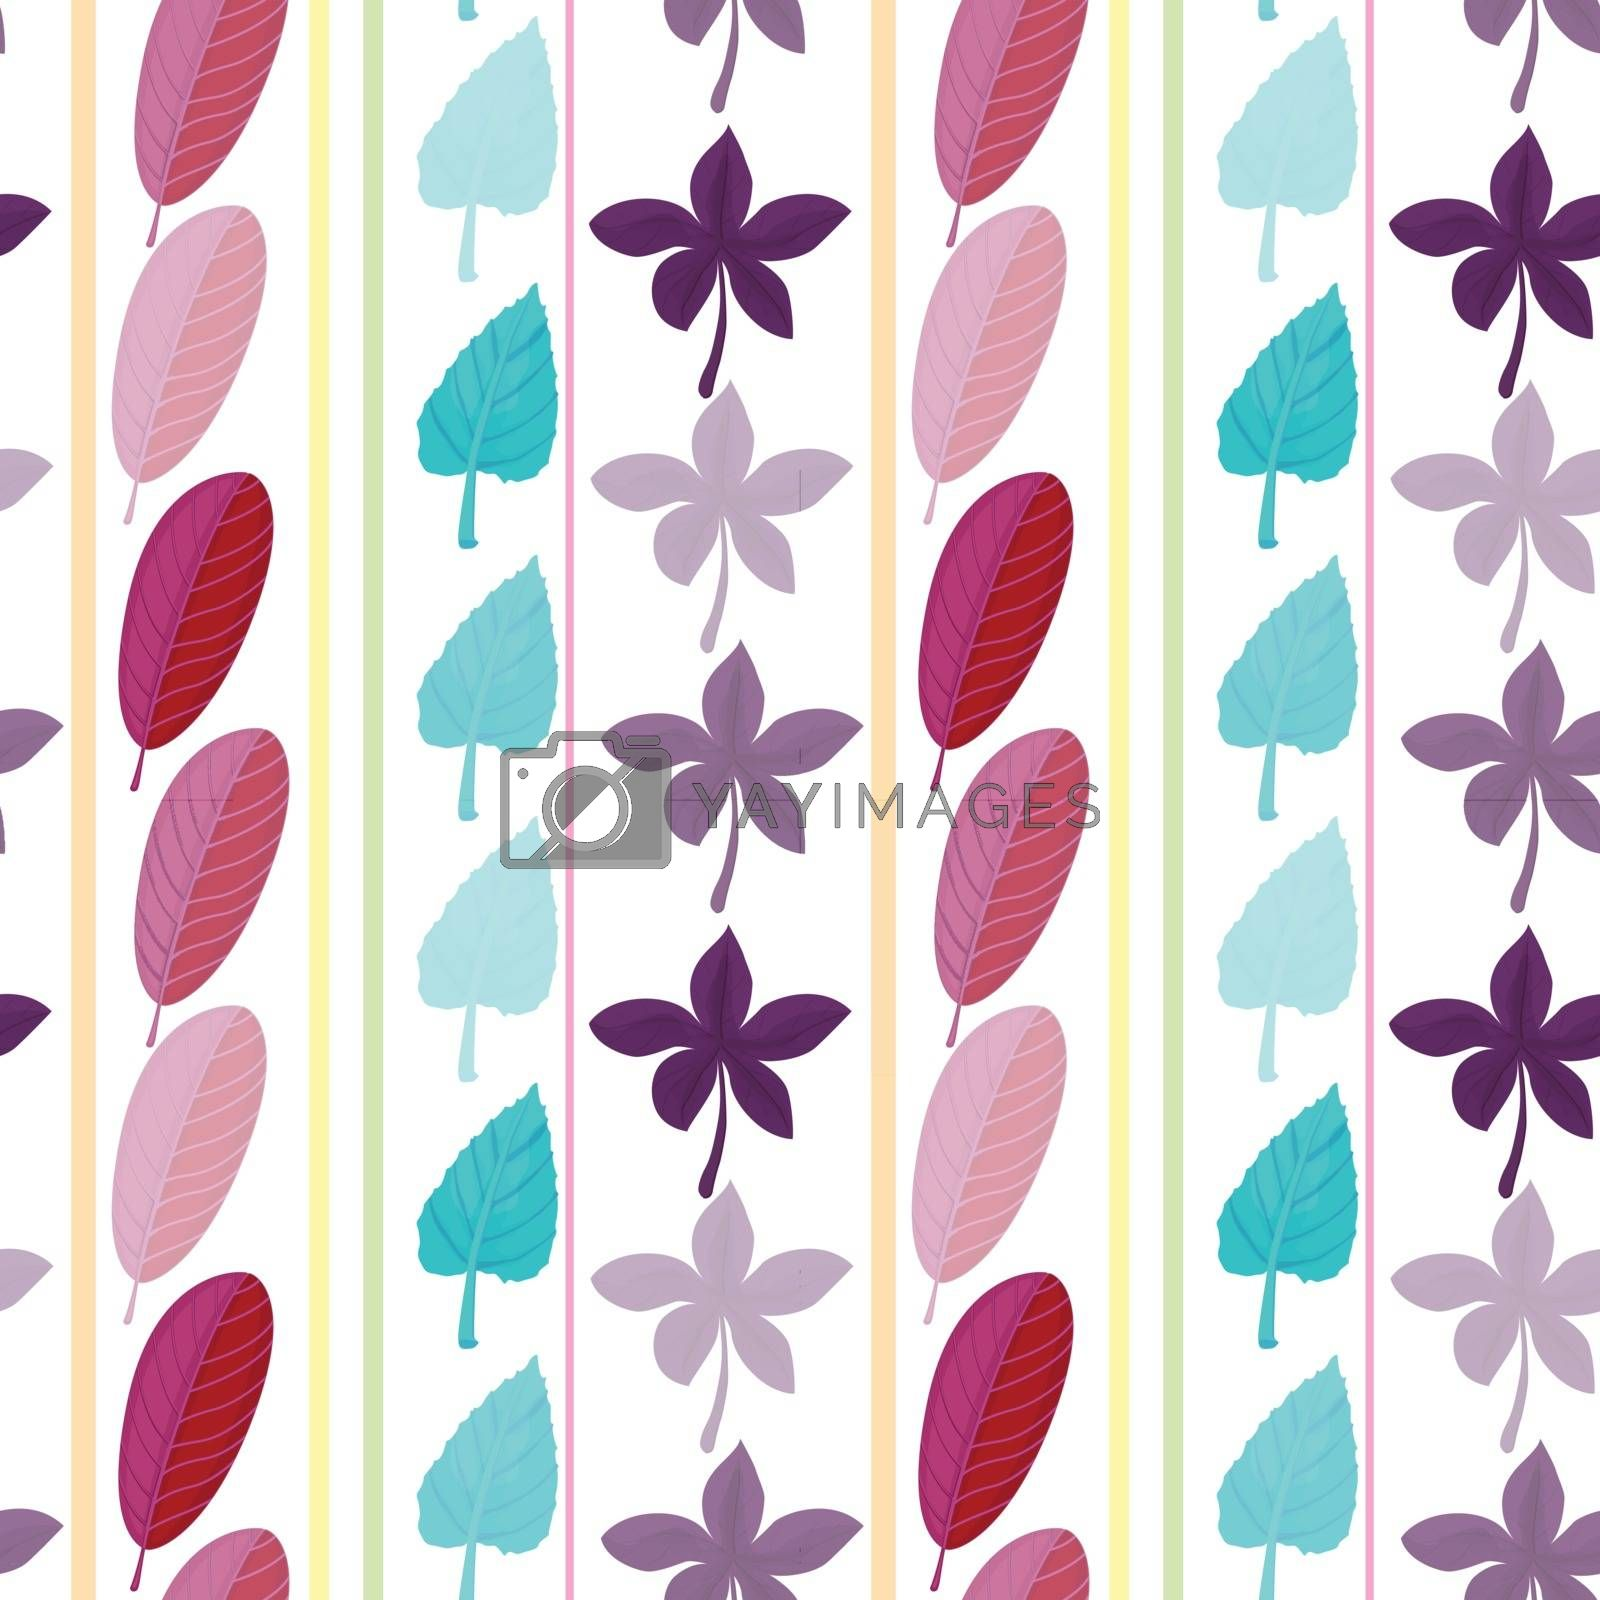 Illustration of a template with leaves